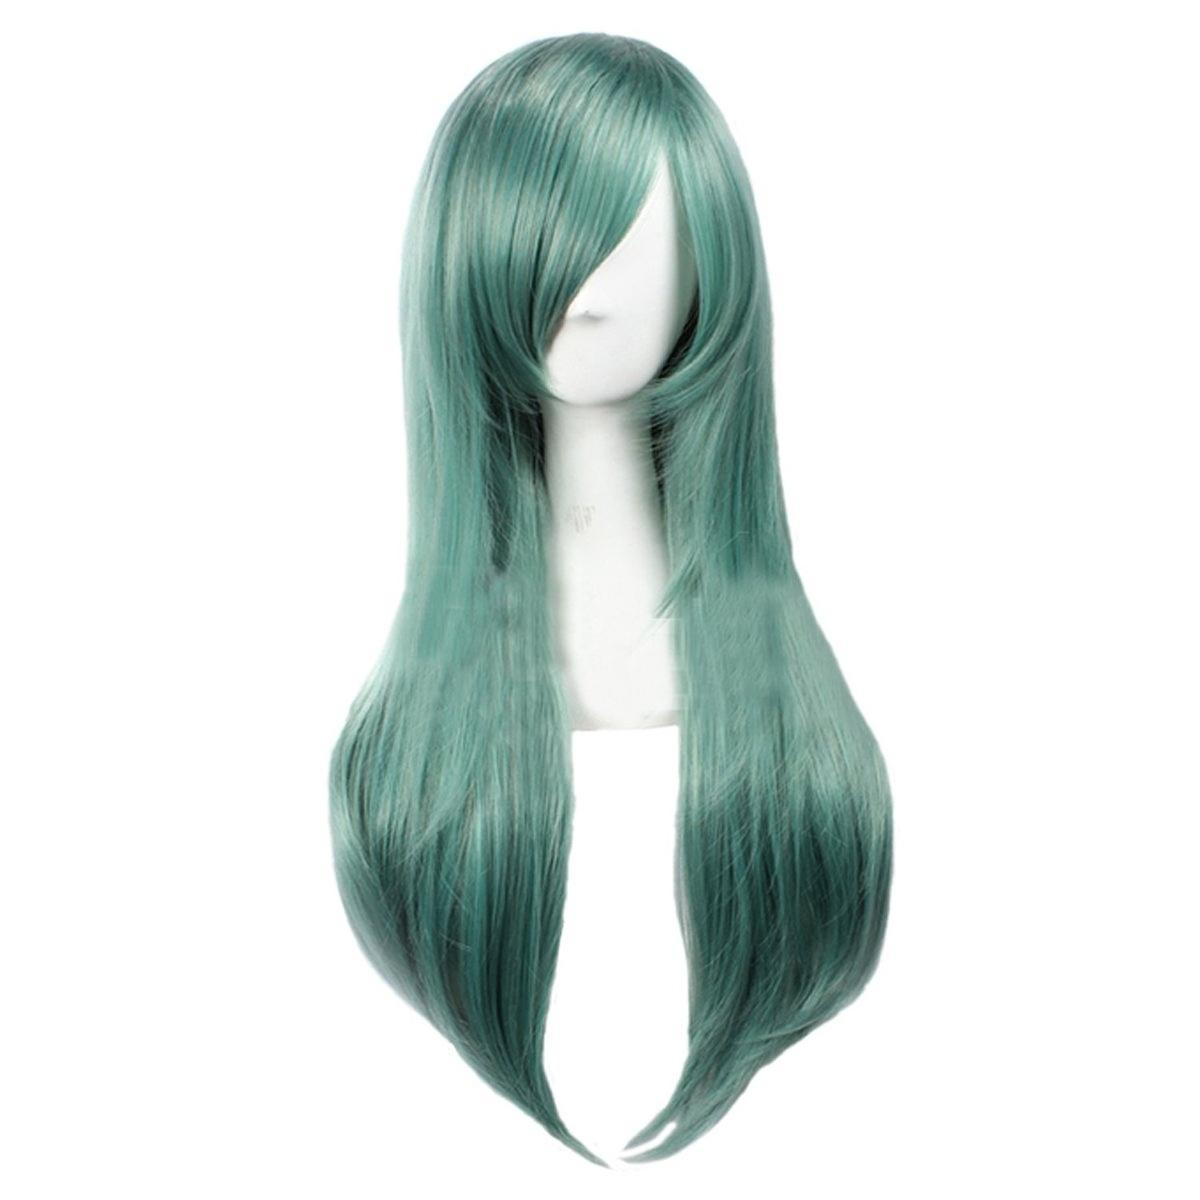 Women's Straight Party Cosplay Costume Full Wigs Long Green